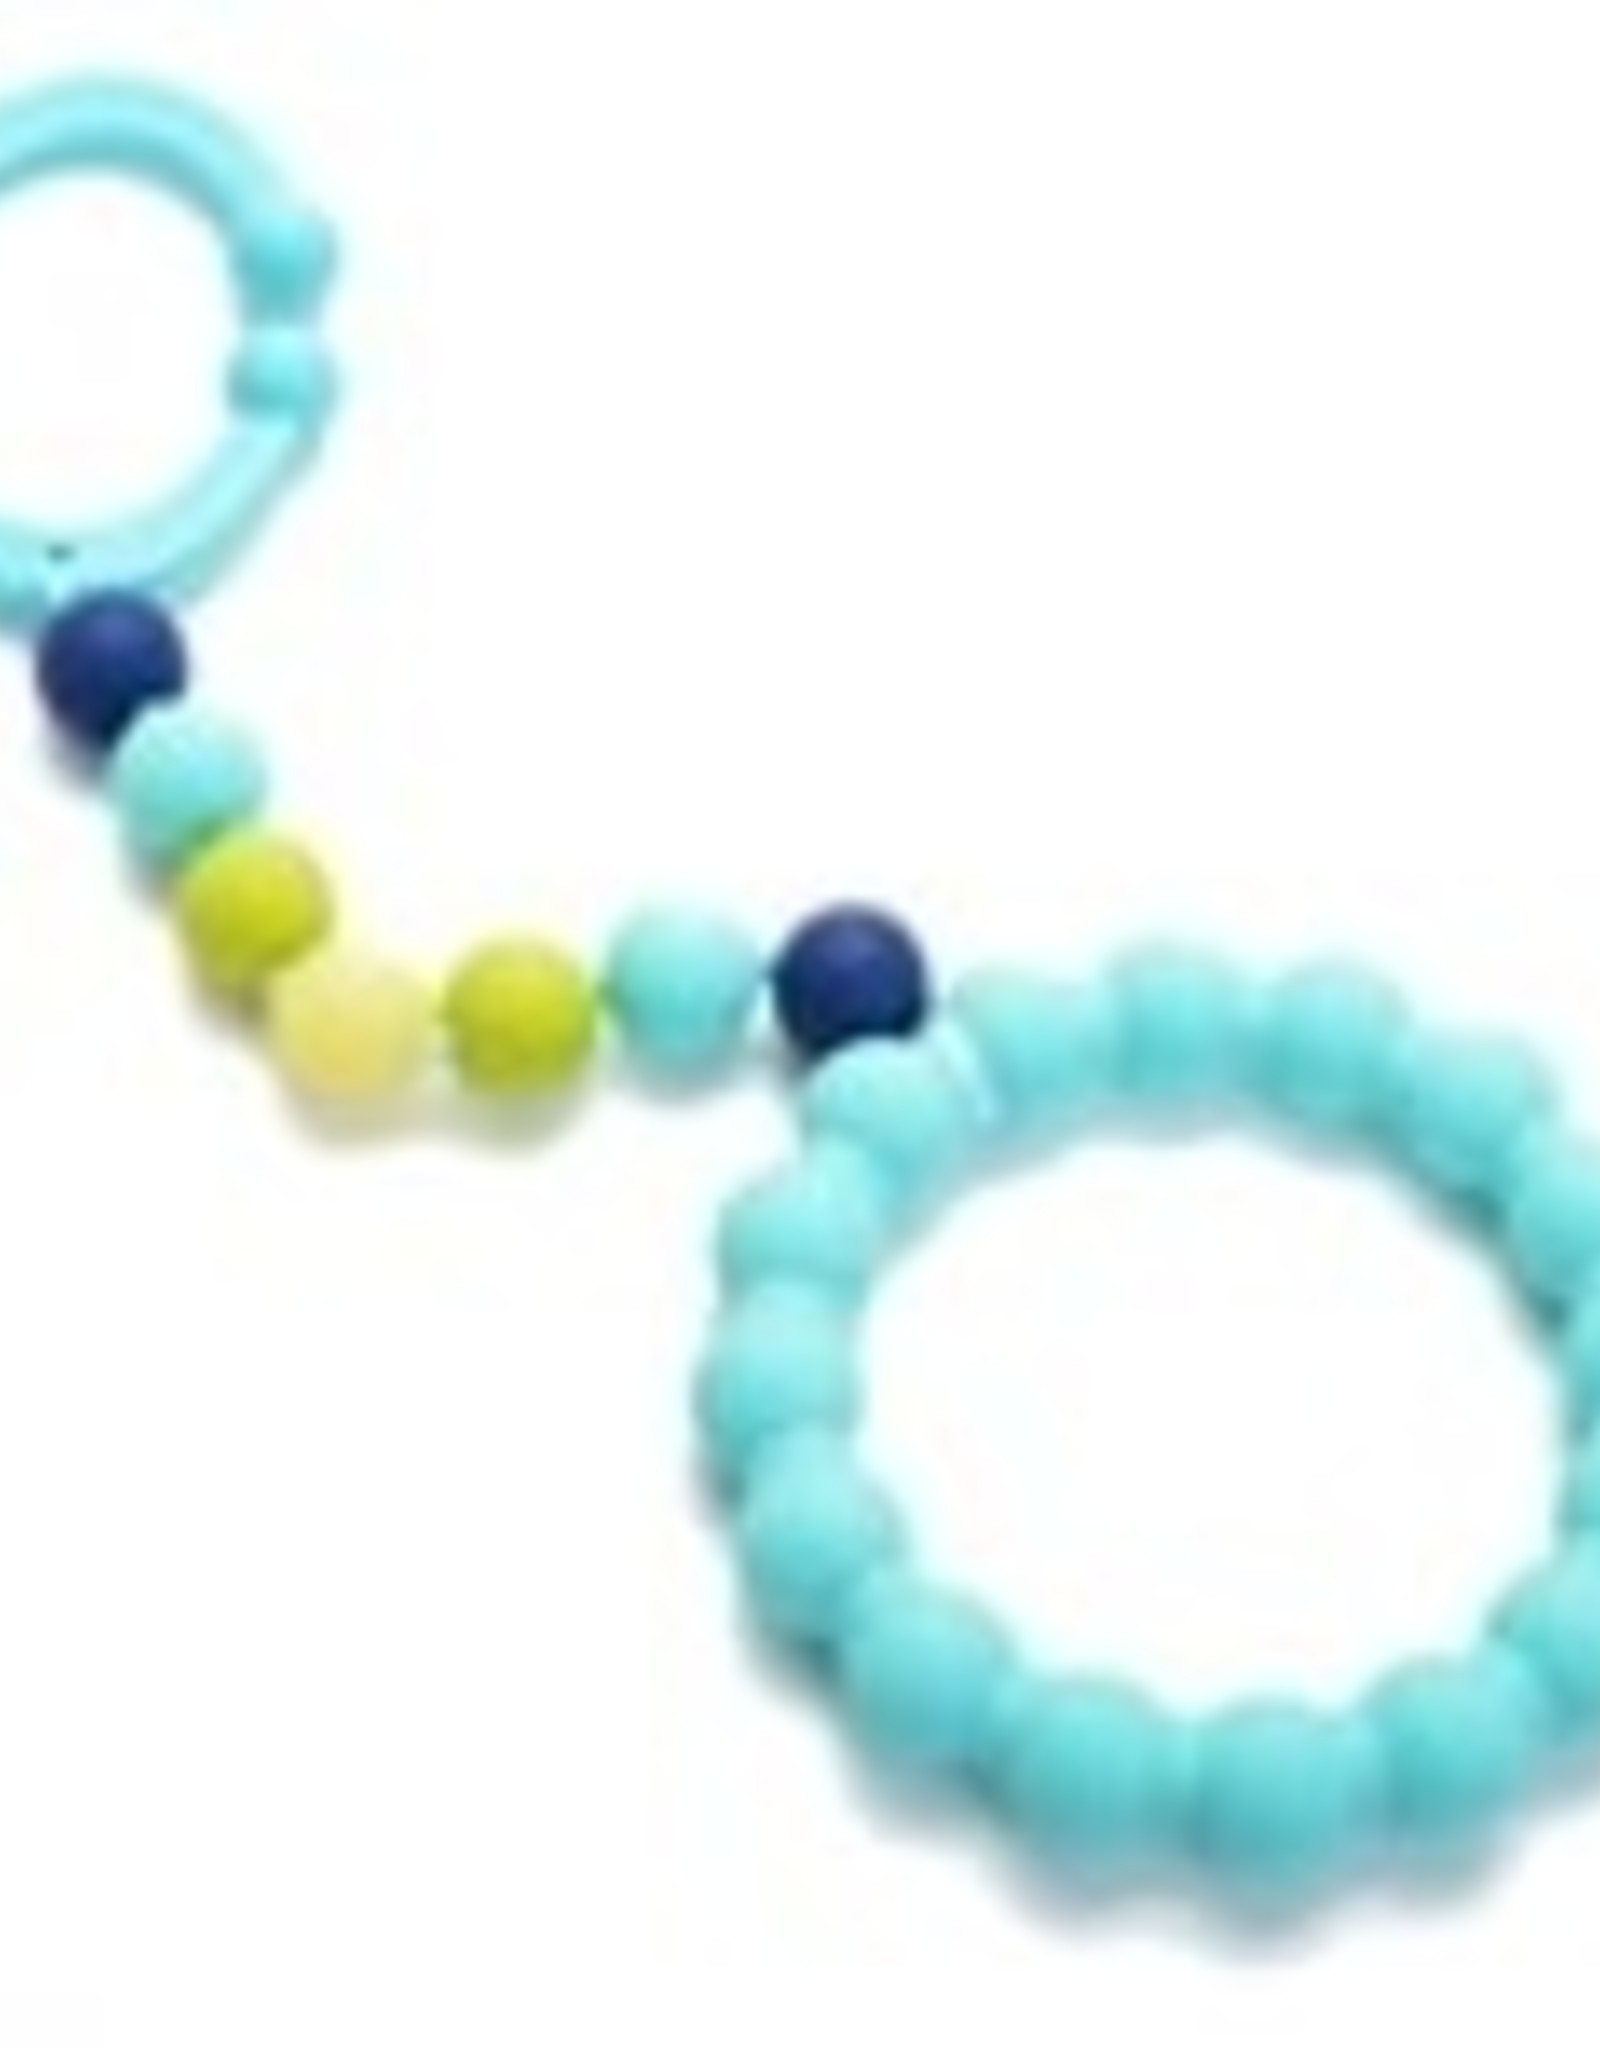 Chewbeads Gramercy Stroller Toy Turquoise